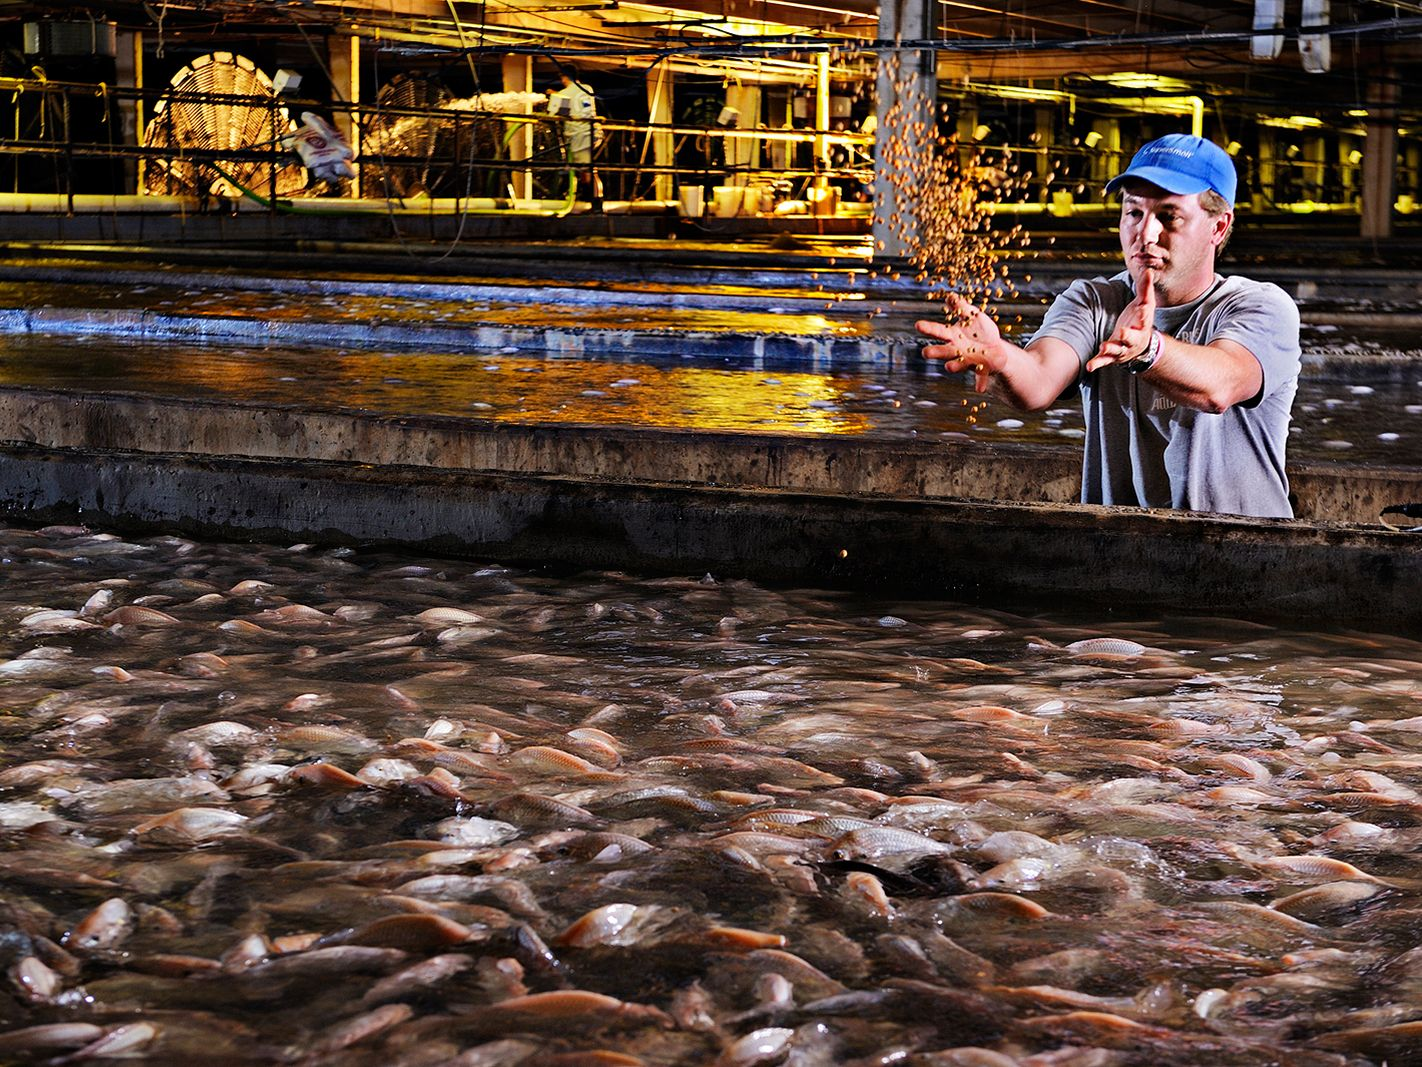 108 best fish farming images on pinterest fish farming